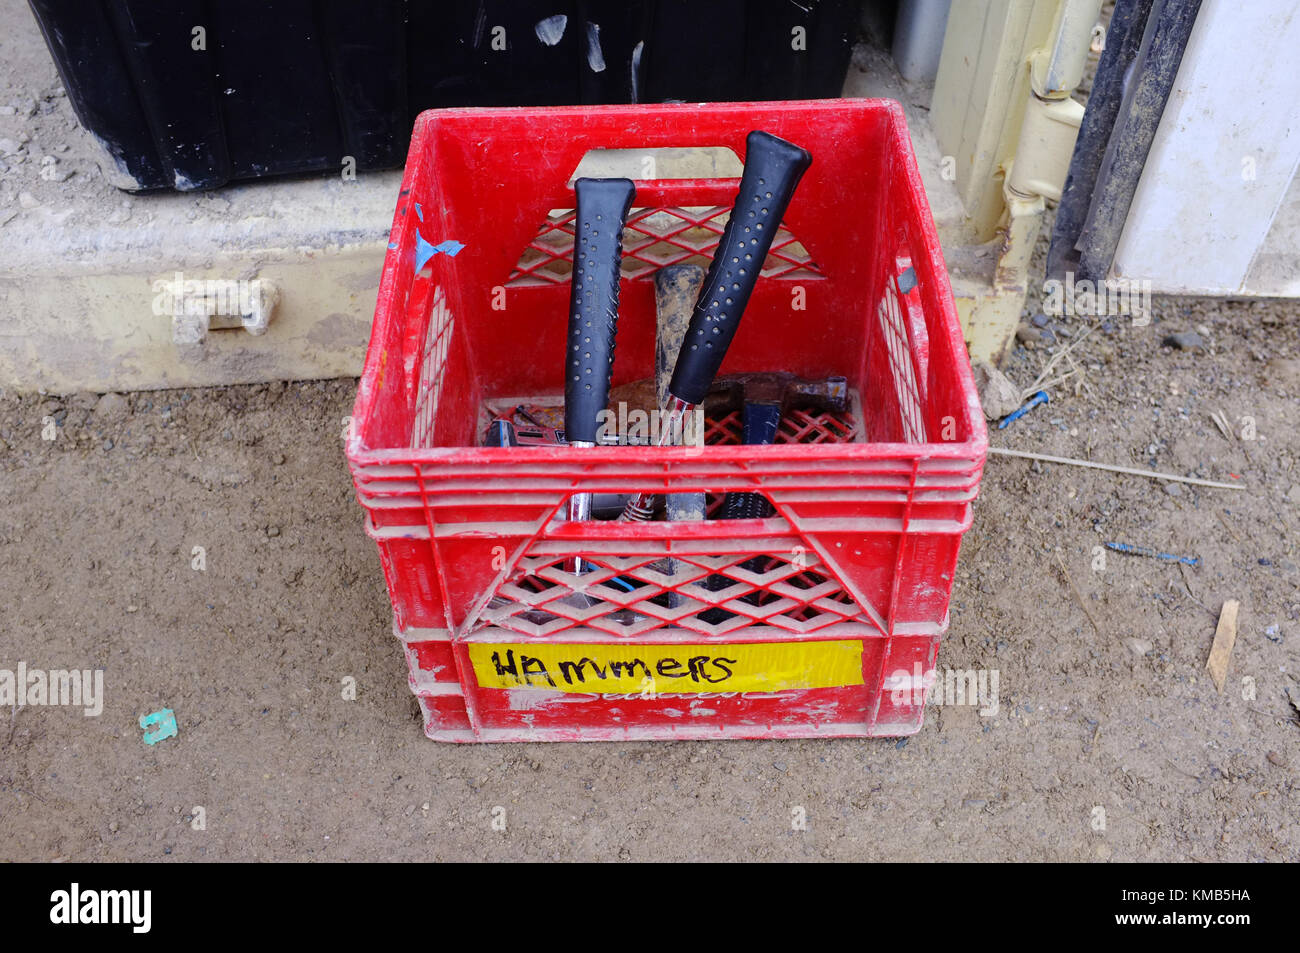 Red Box Construction Site Stock Photos Electrical Fuses On A Of Hammers Building In The Canadian City London Ontario